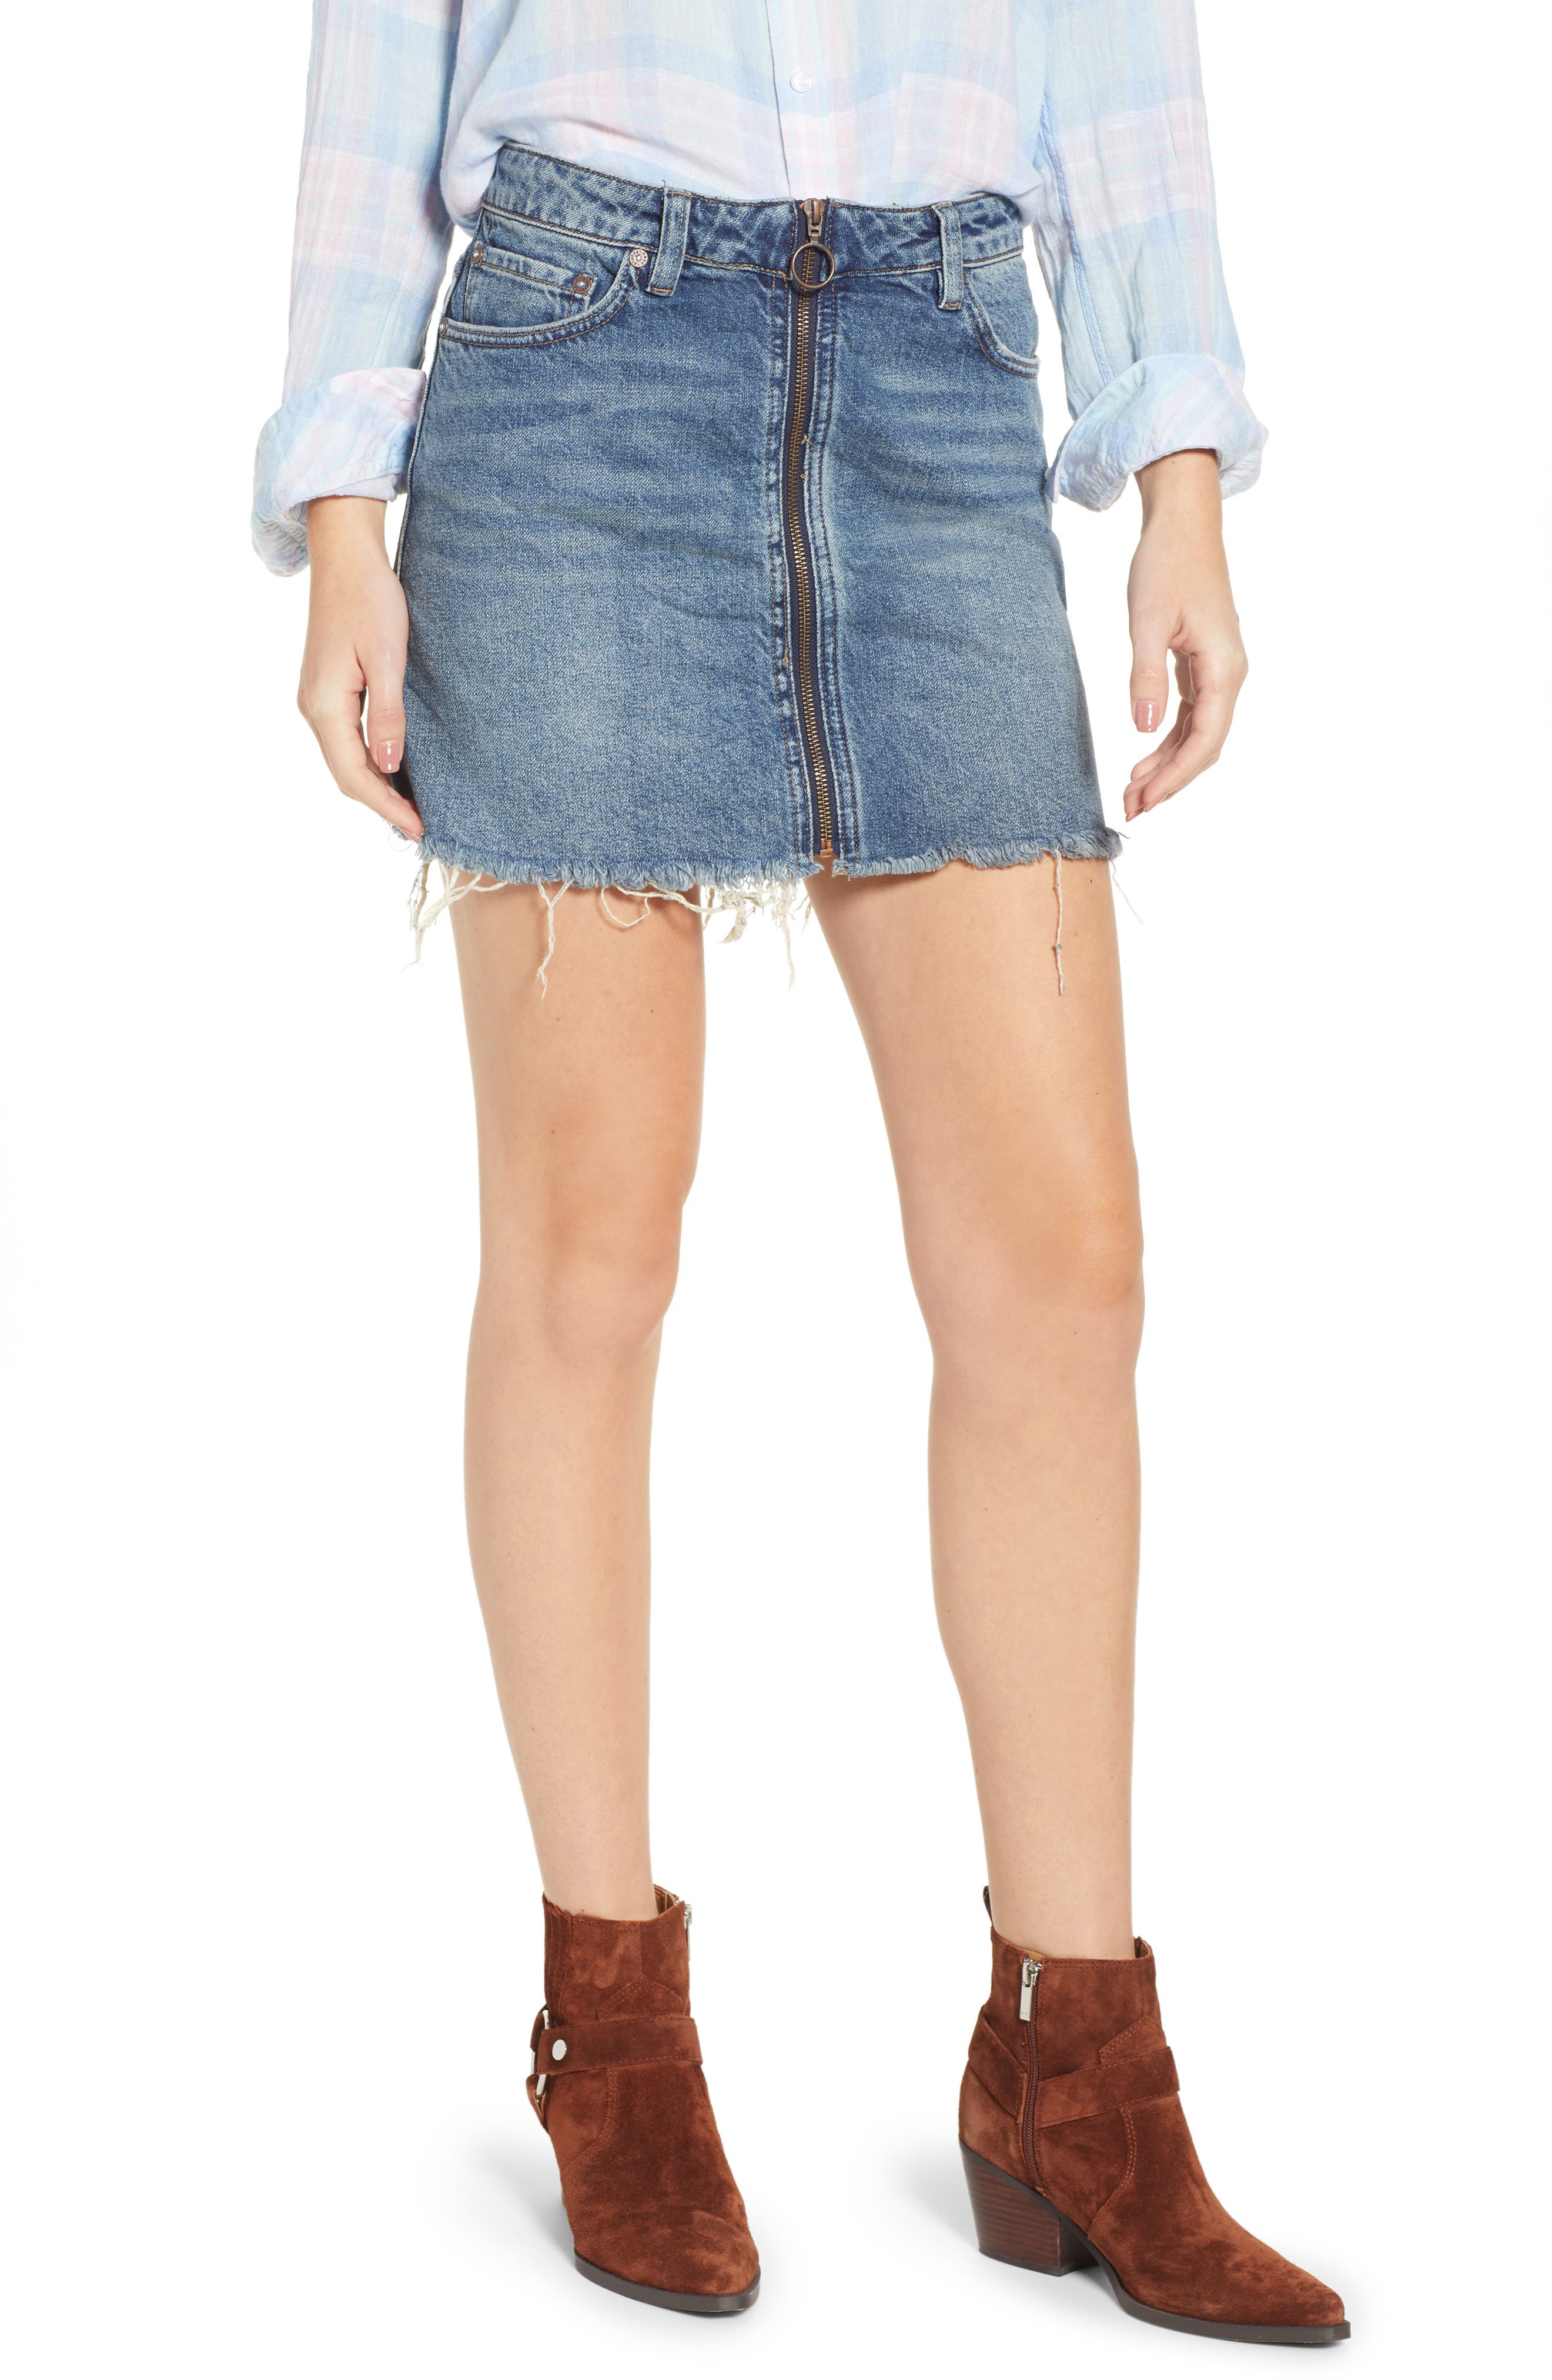 FREE PEOPLE We the Free by Free People Zip It Up Denim Miniskirt, Main, color, BLUE